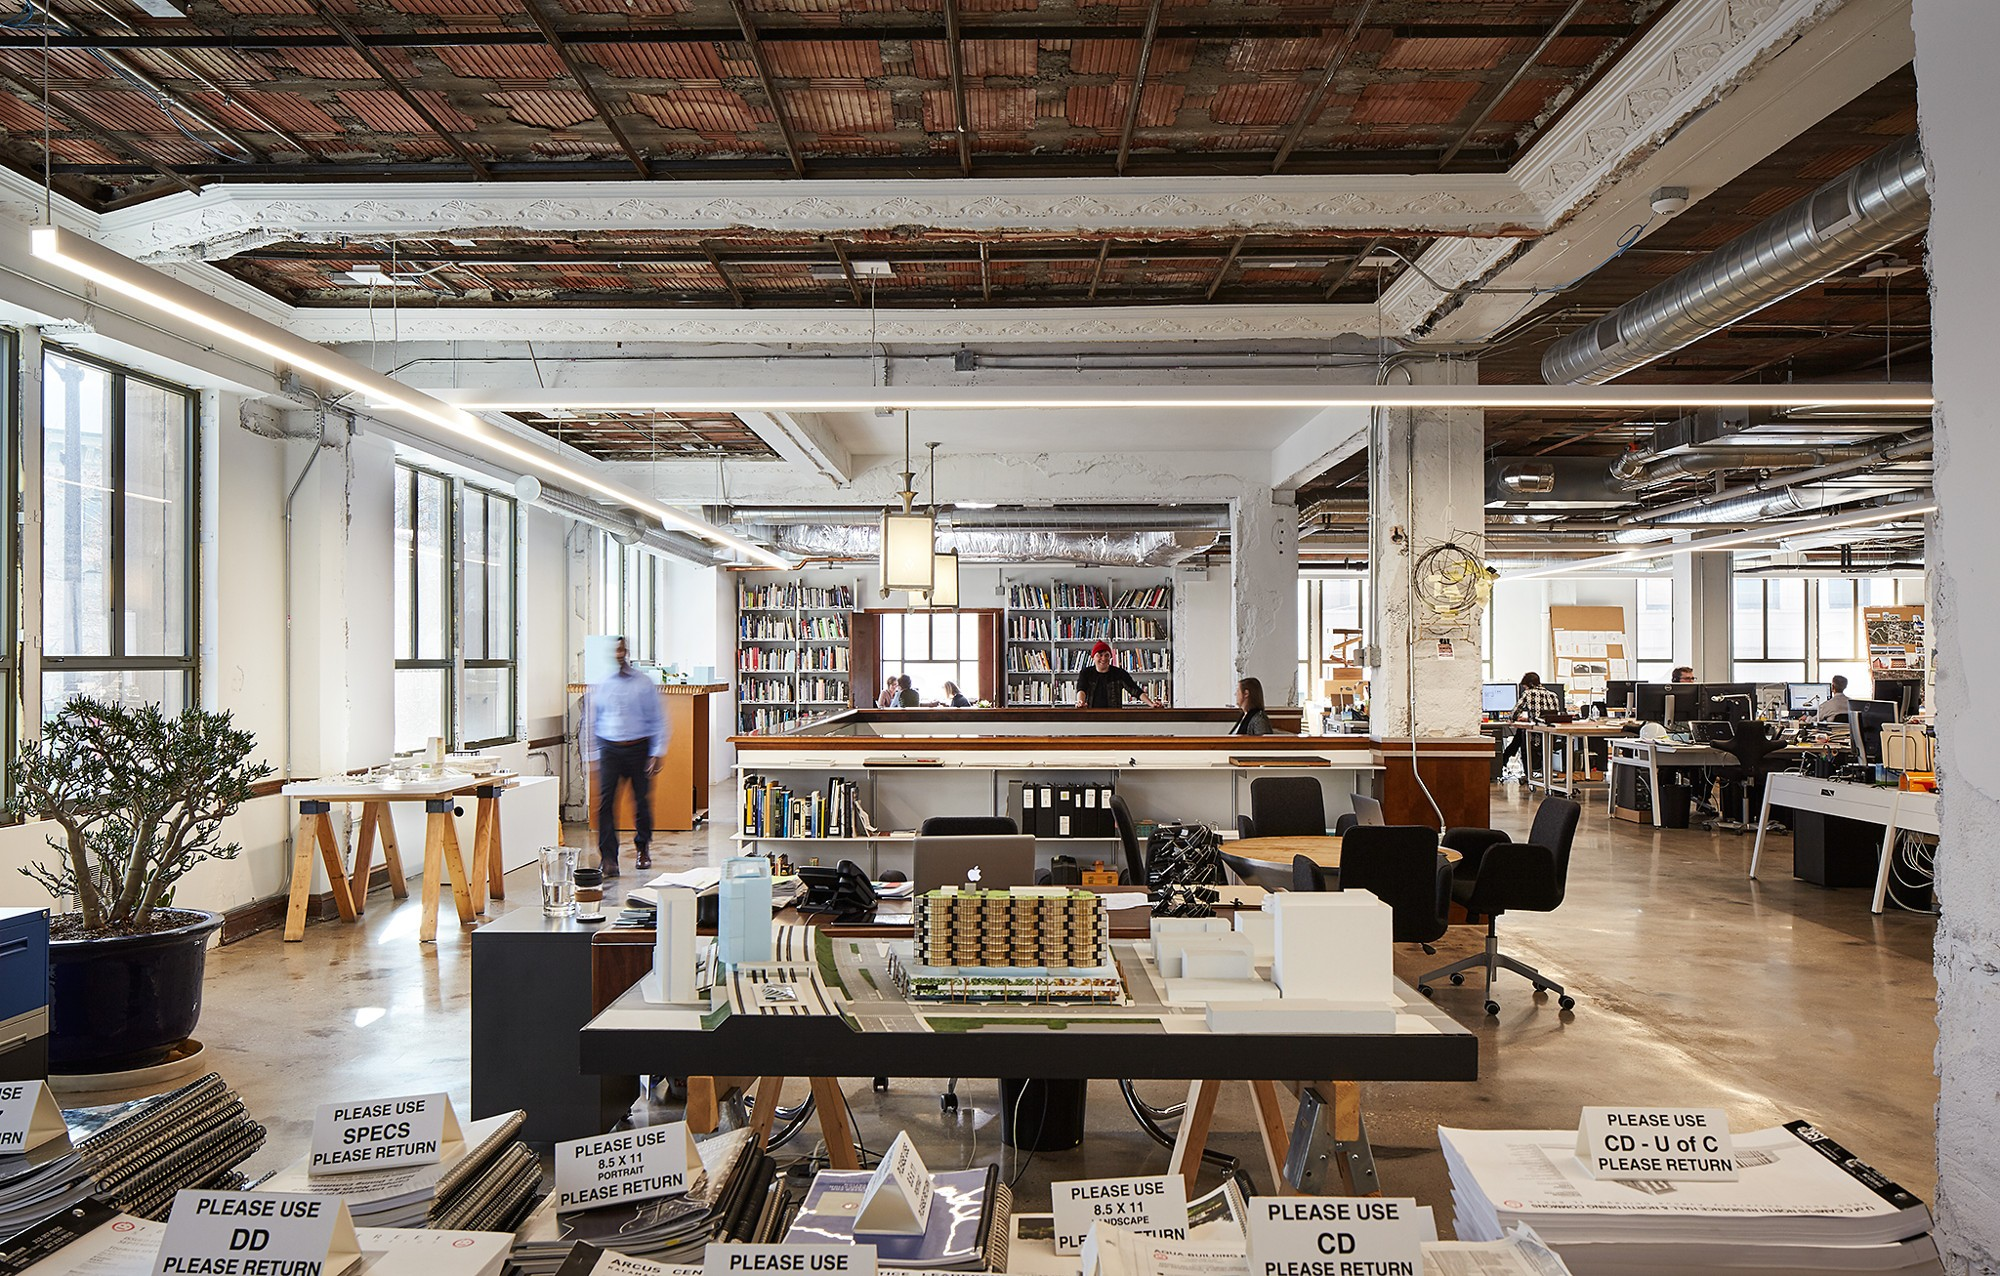 studio gang architectural digest architects harris tom architecture chicago open peregalli site